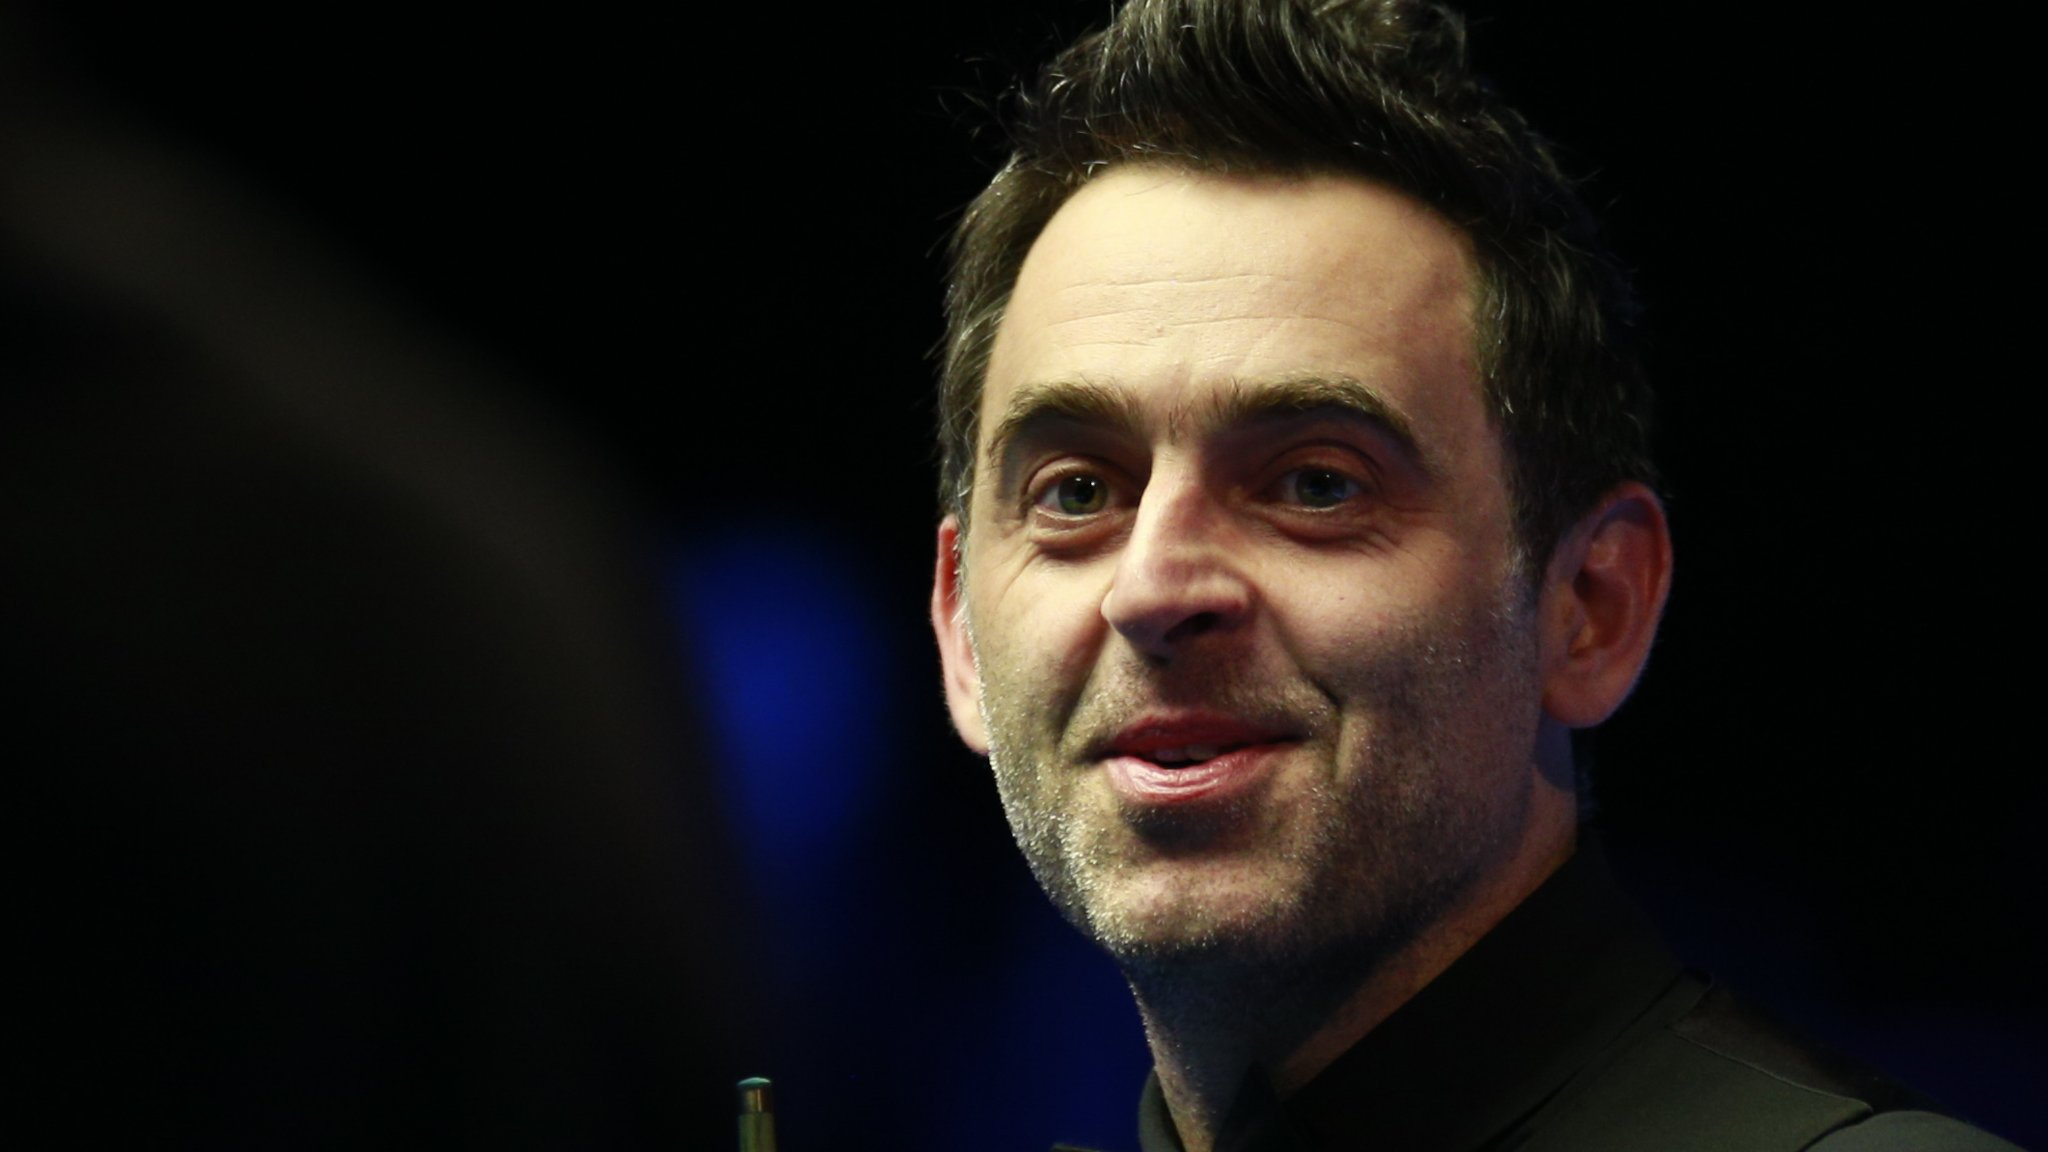 O'Sullivan still 'fighting and punching' as he edges closer to top of world rankings